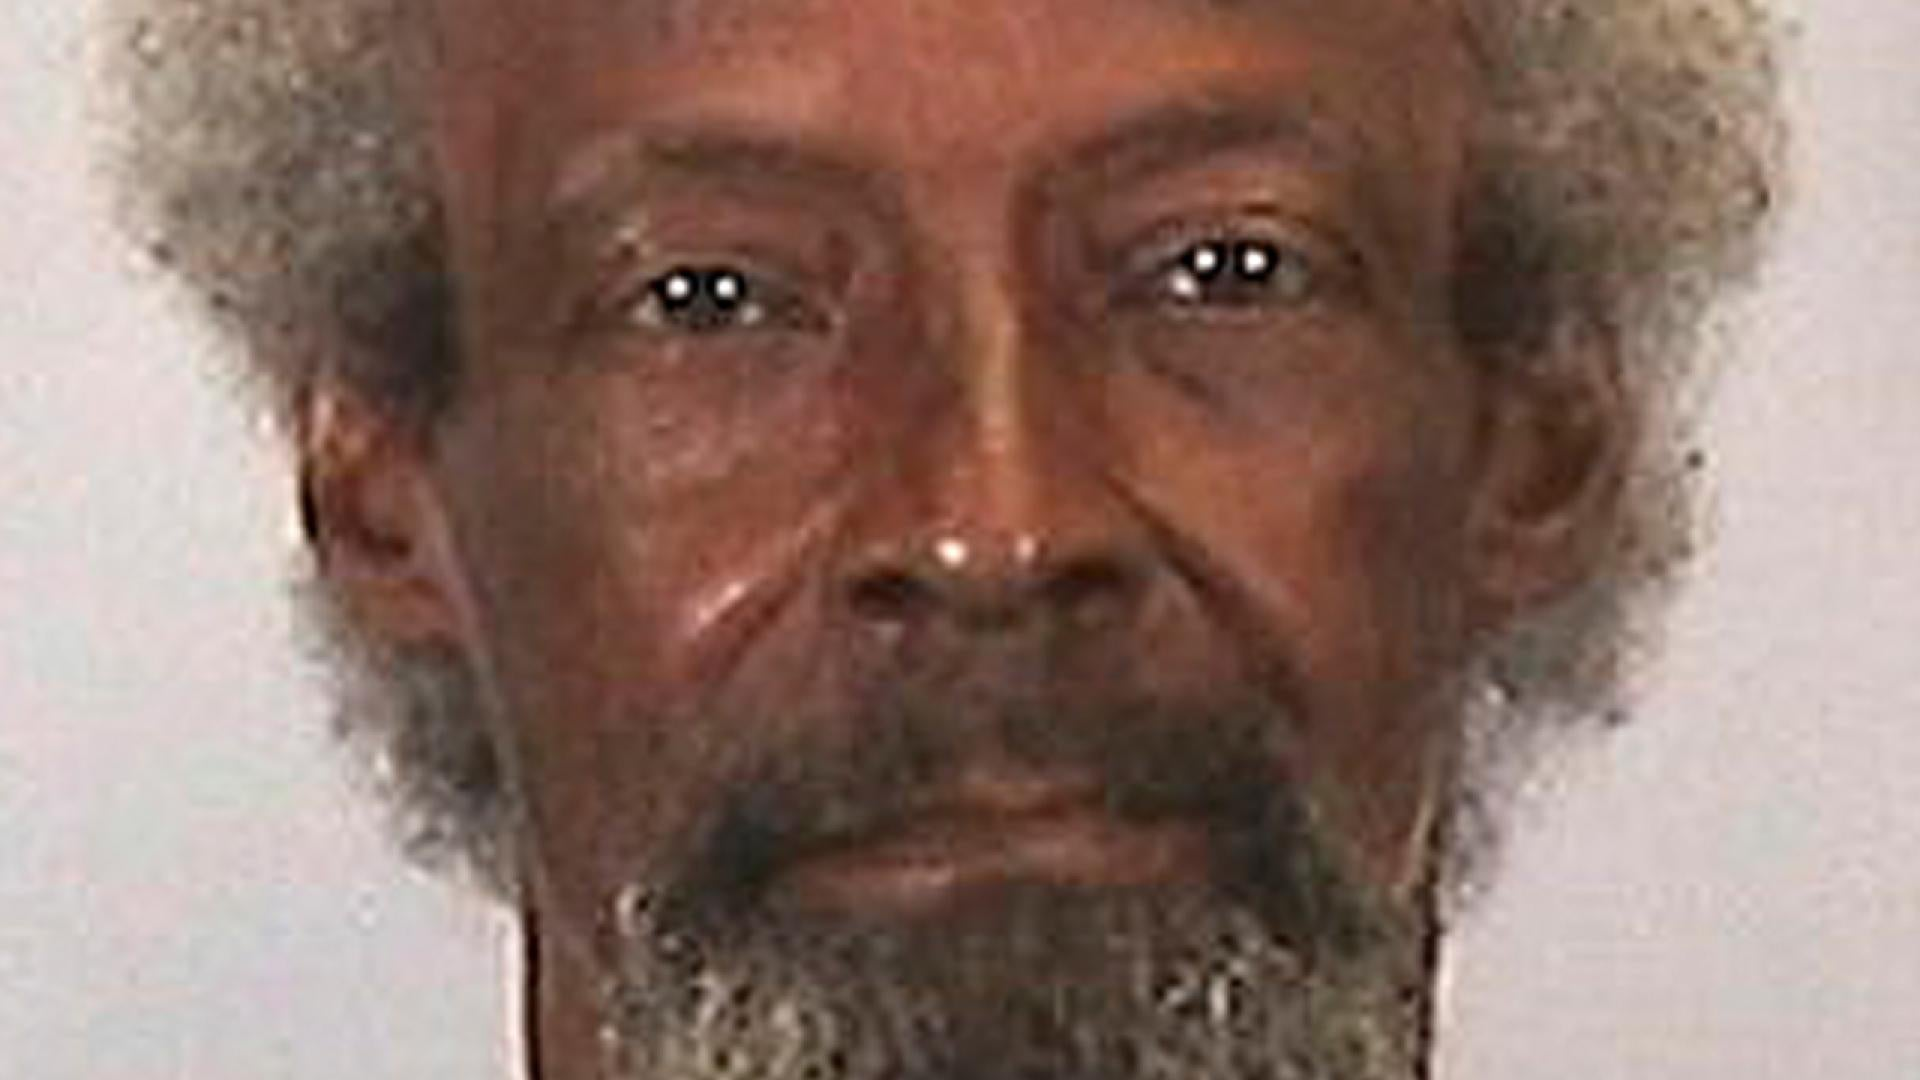 DNA evidence allegedly tied Larry Joe Scott, 65, to the murder of Bonnie Neighbors, who was just 33 when she was bound and fatally shot in Benson in December 1972.